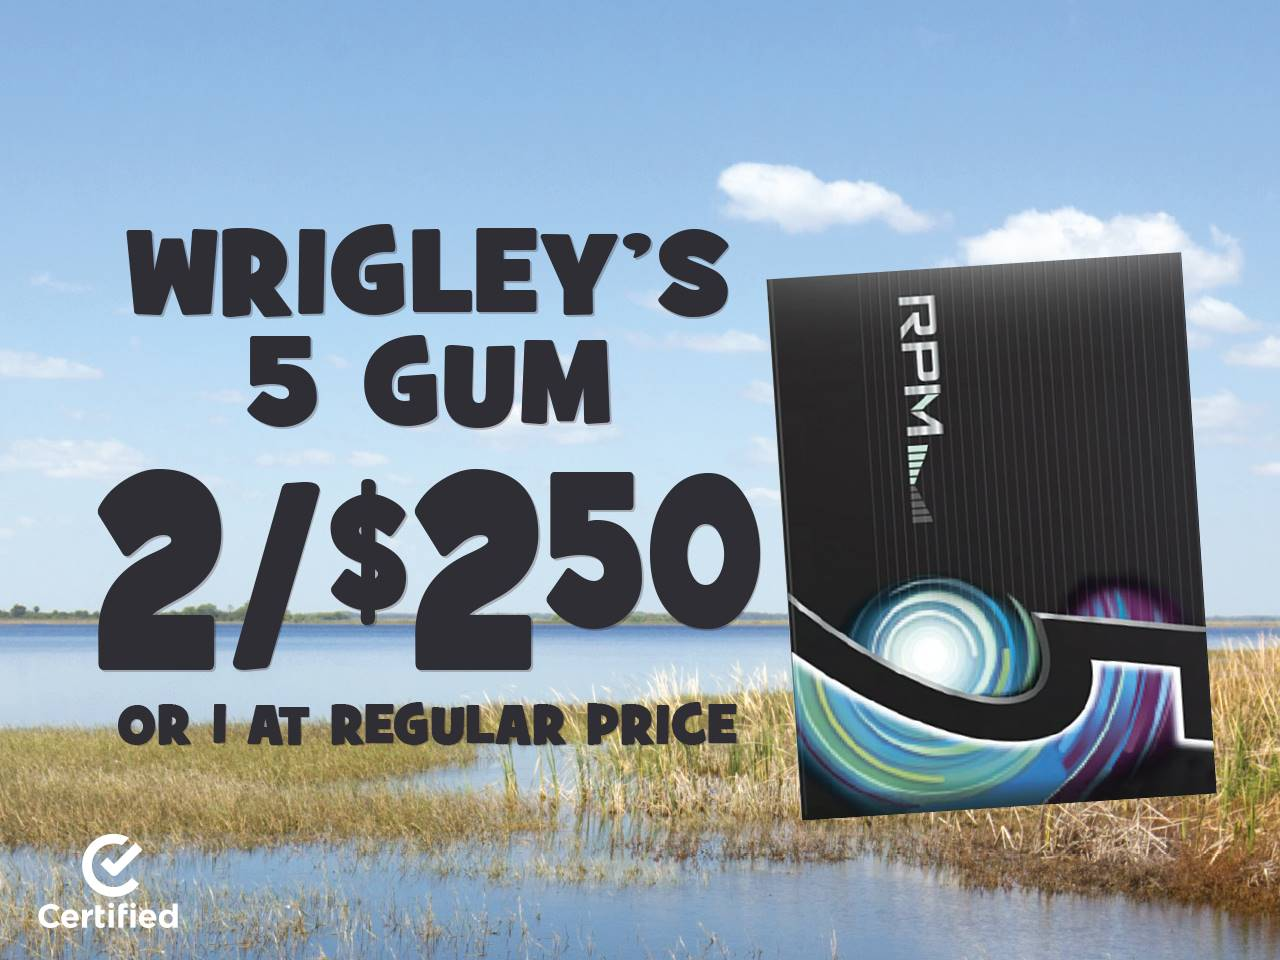 Wrigley's 5 Gum 2 for $2.50 or 1 at Regular Price